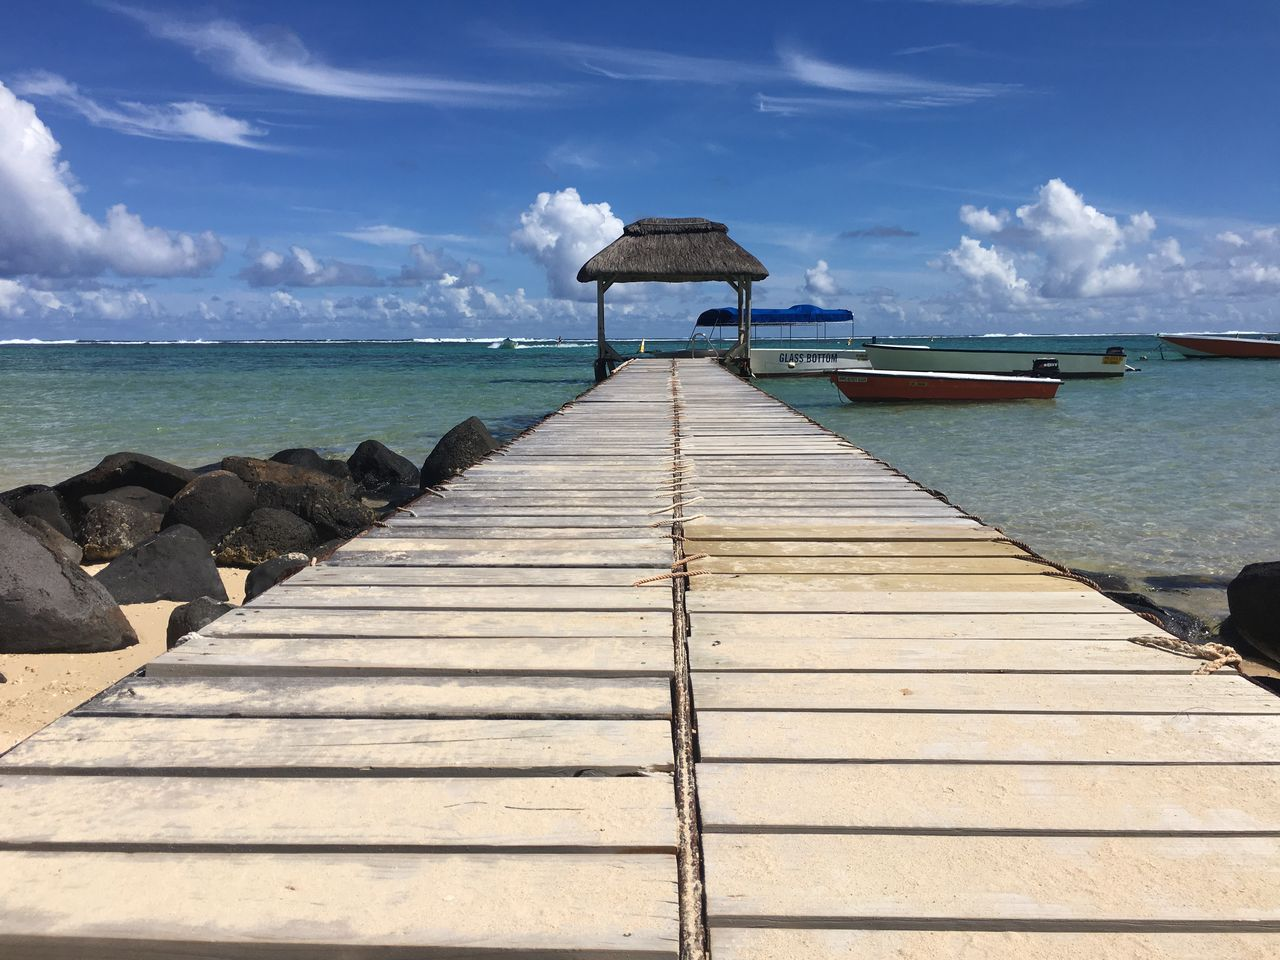 water, sea, sky, horizon over water, horizon, cloud - sky, scenics - nature, beauty in nature, direction, the way forward, nature, tranquil scene, pier, tranquility, wood - material, day, no people, jetty, sunlight, outdoors, wood, wood paneling